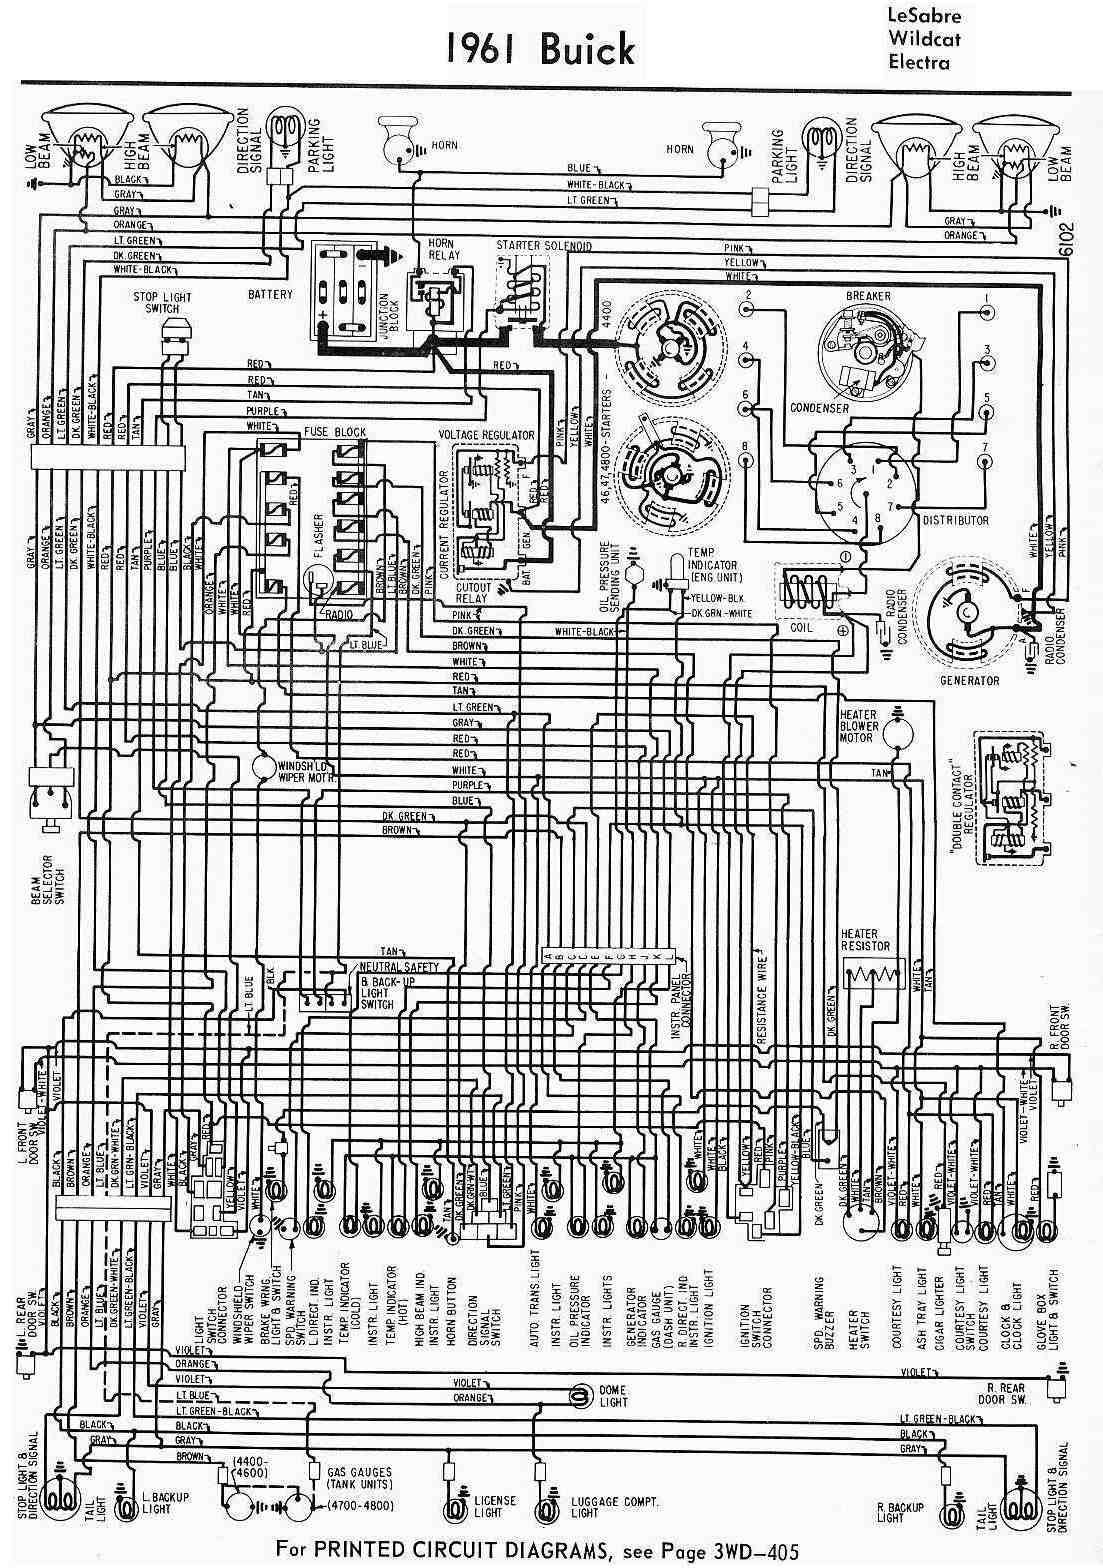 a6441862bfcf99130fb7ff5756998744 1948 studebaker wiring diagram manual repair with engine studebaker wiring diagrams at n-0.co